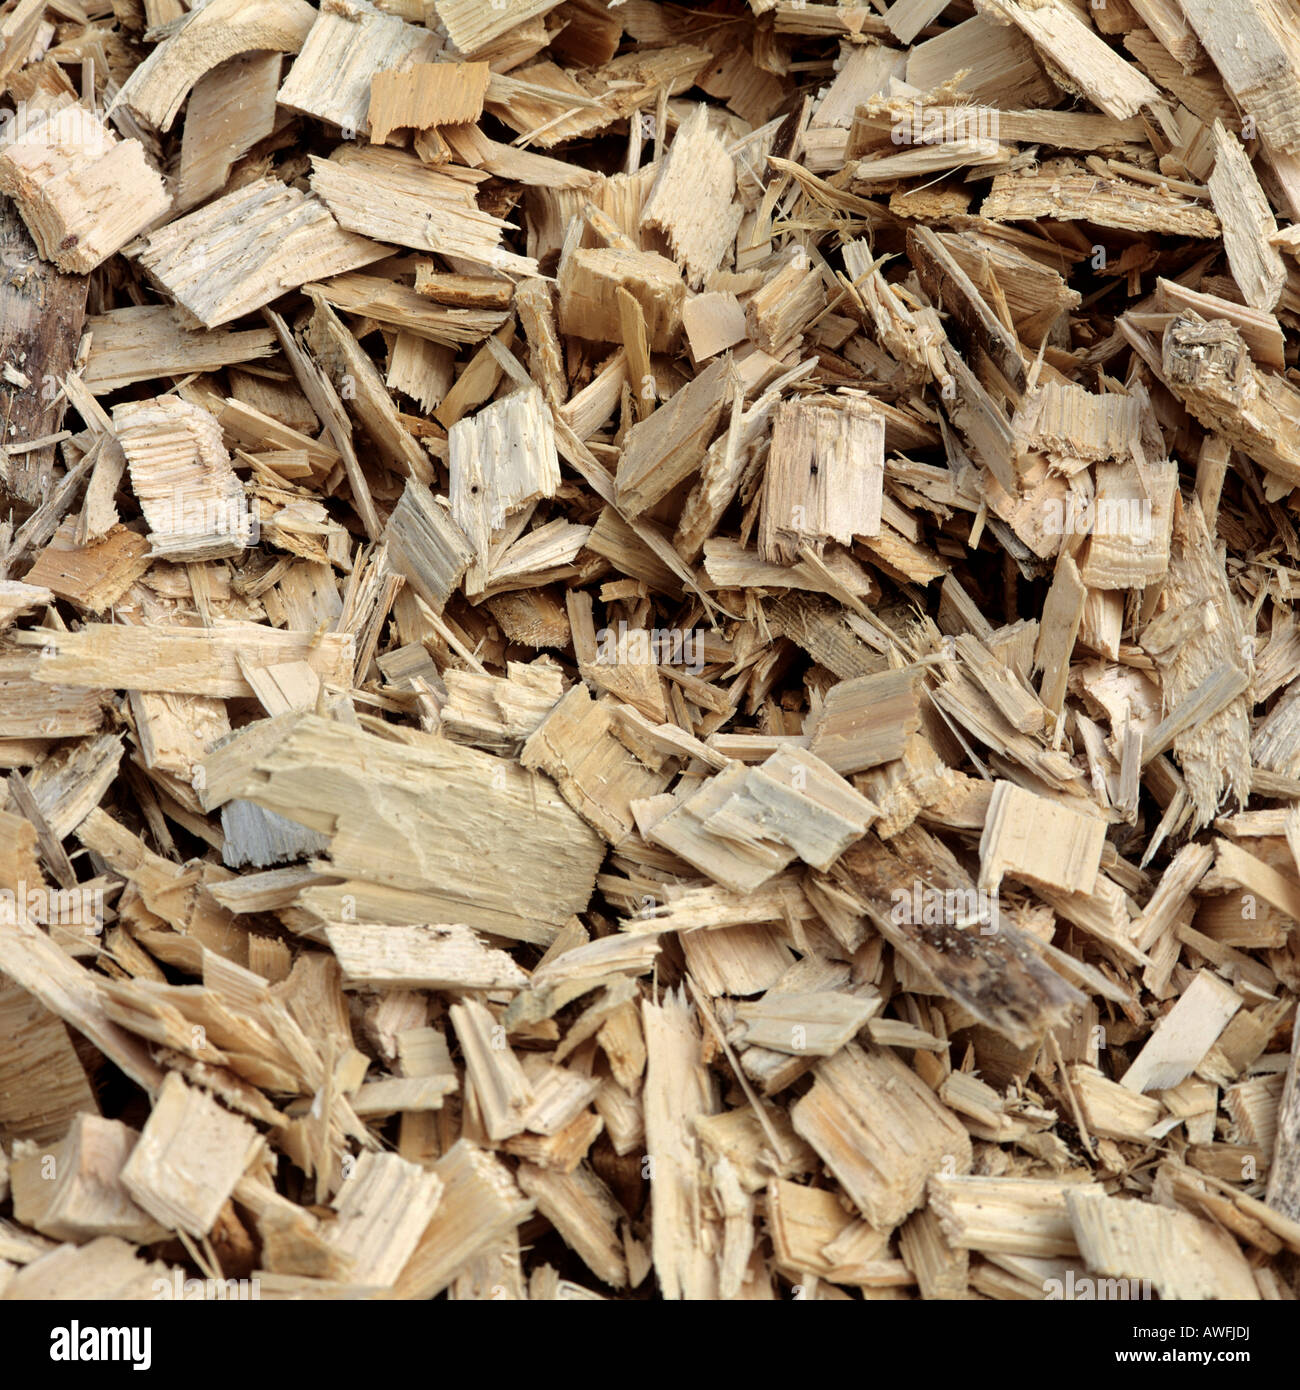 Woodchips used as an energy source - Stock Image